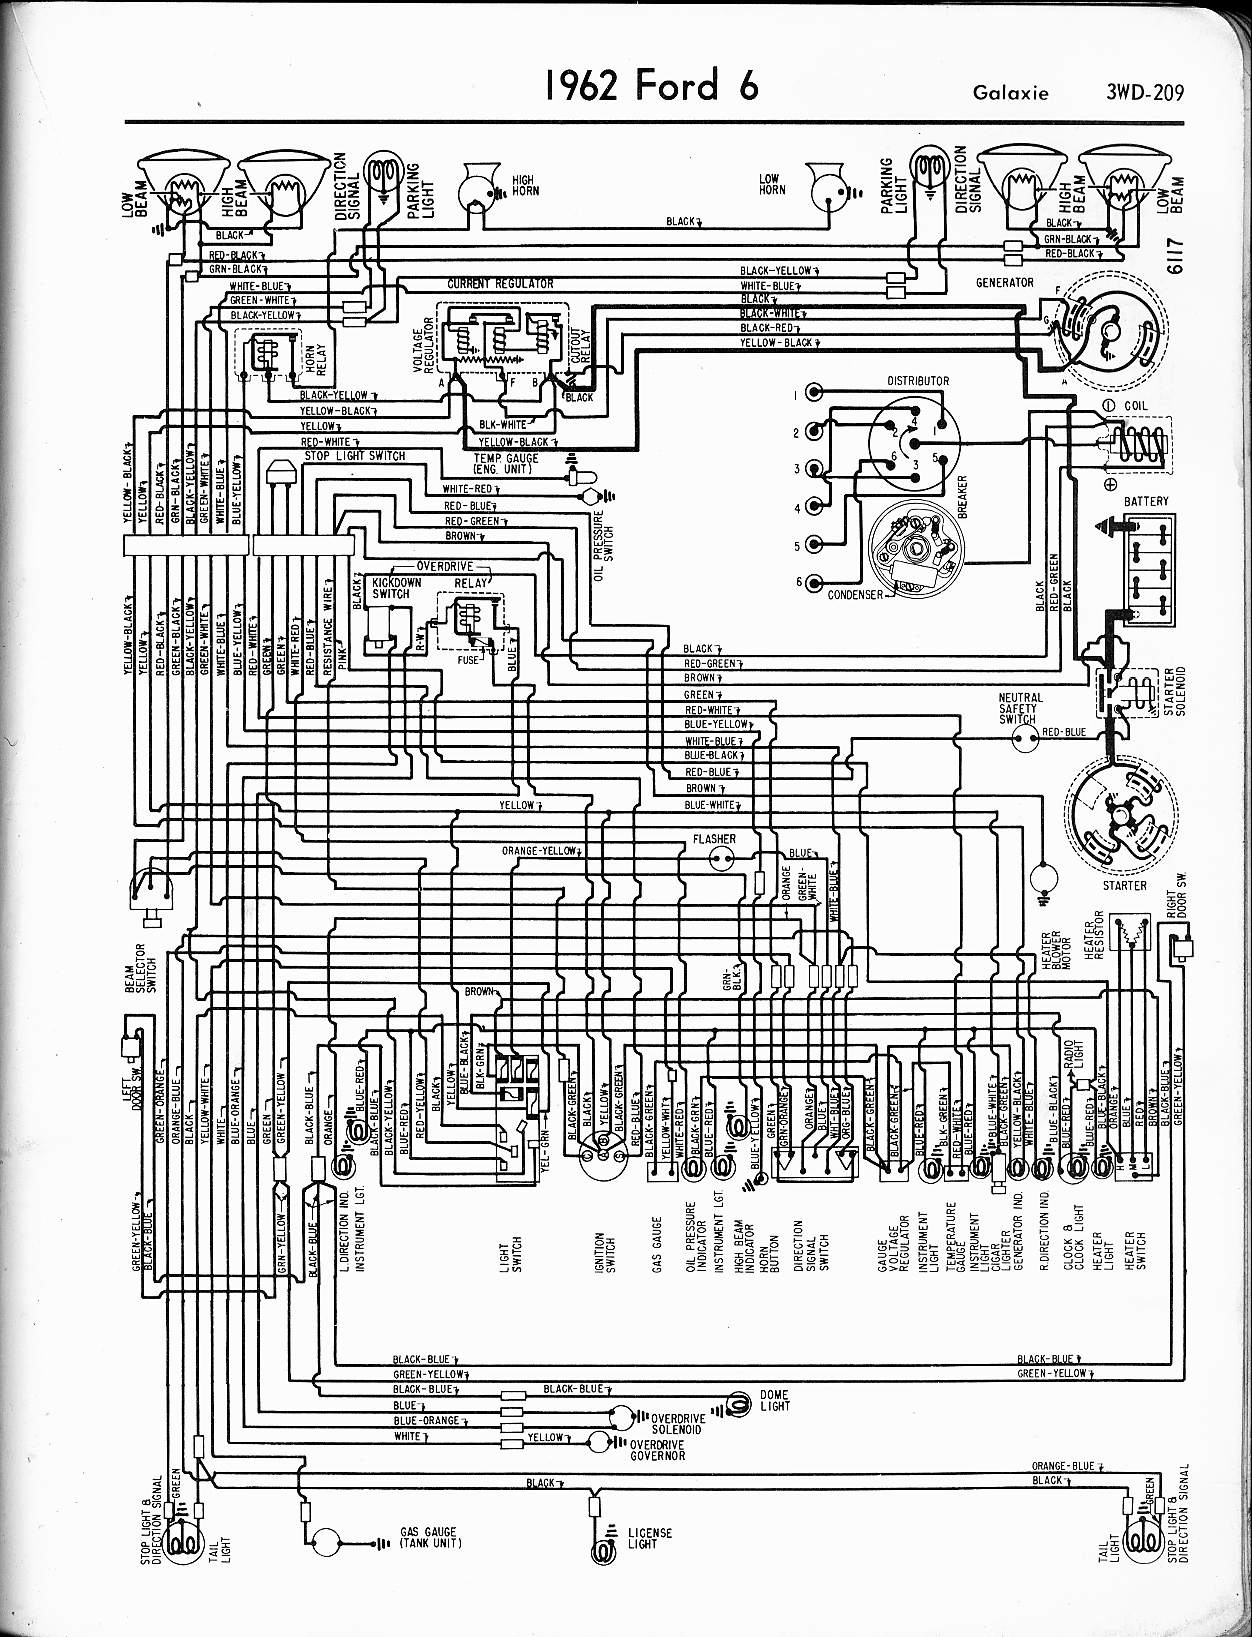 65 Ford Galaxie Wiring Diagram Schematic Books Of Buick Reatta 57 Diagrams Rh Oldcarmanualproject Com